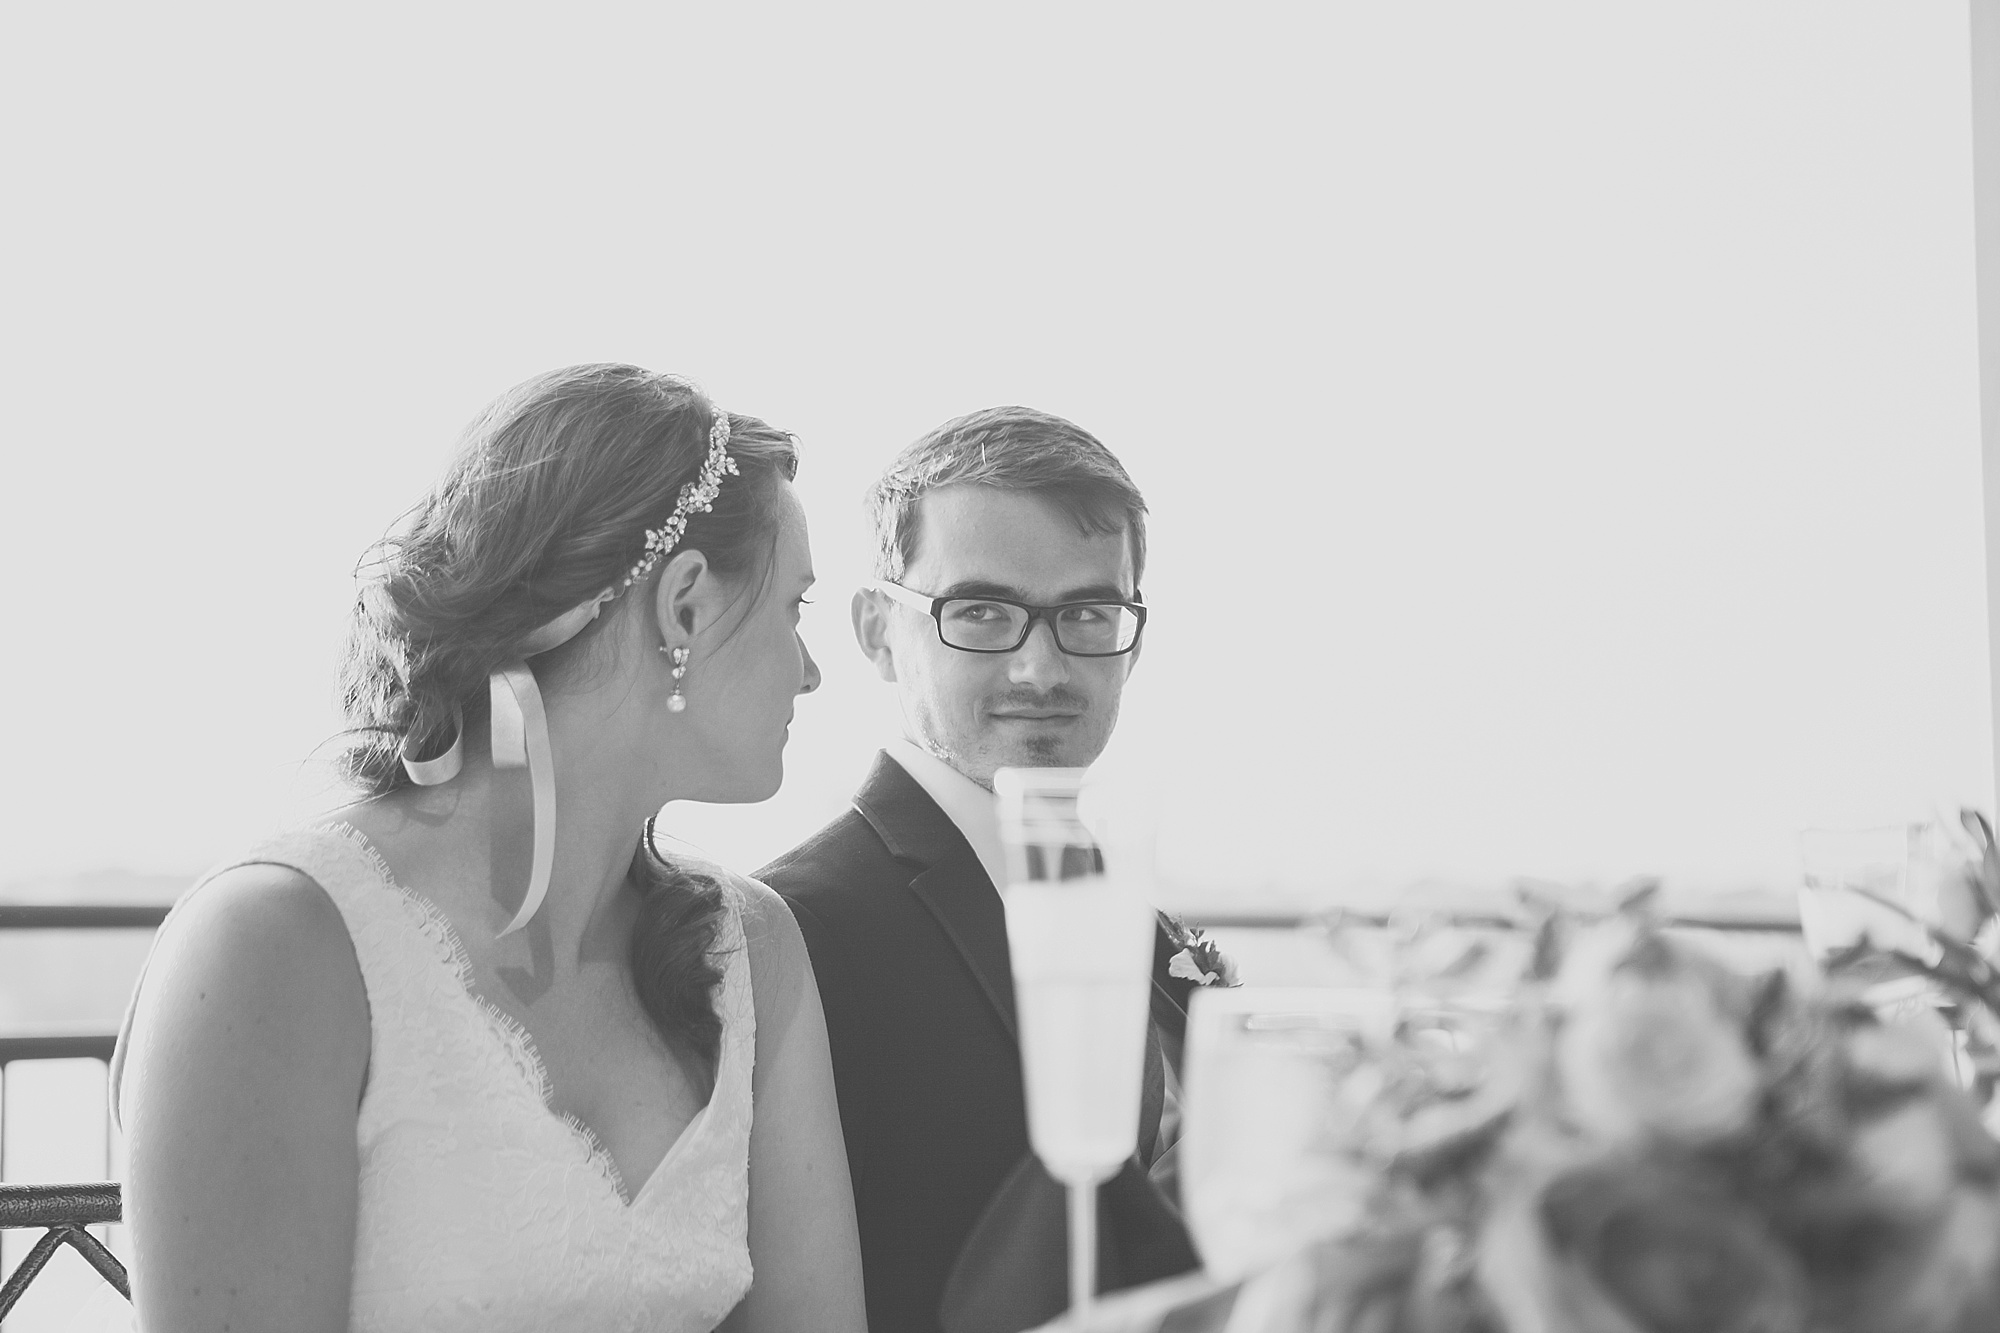 Joe_Mac_Creative_Rachel_and_Matt_Wedding_Photography_0027.jpg